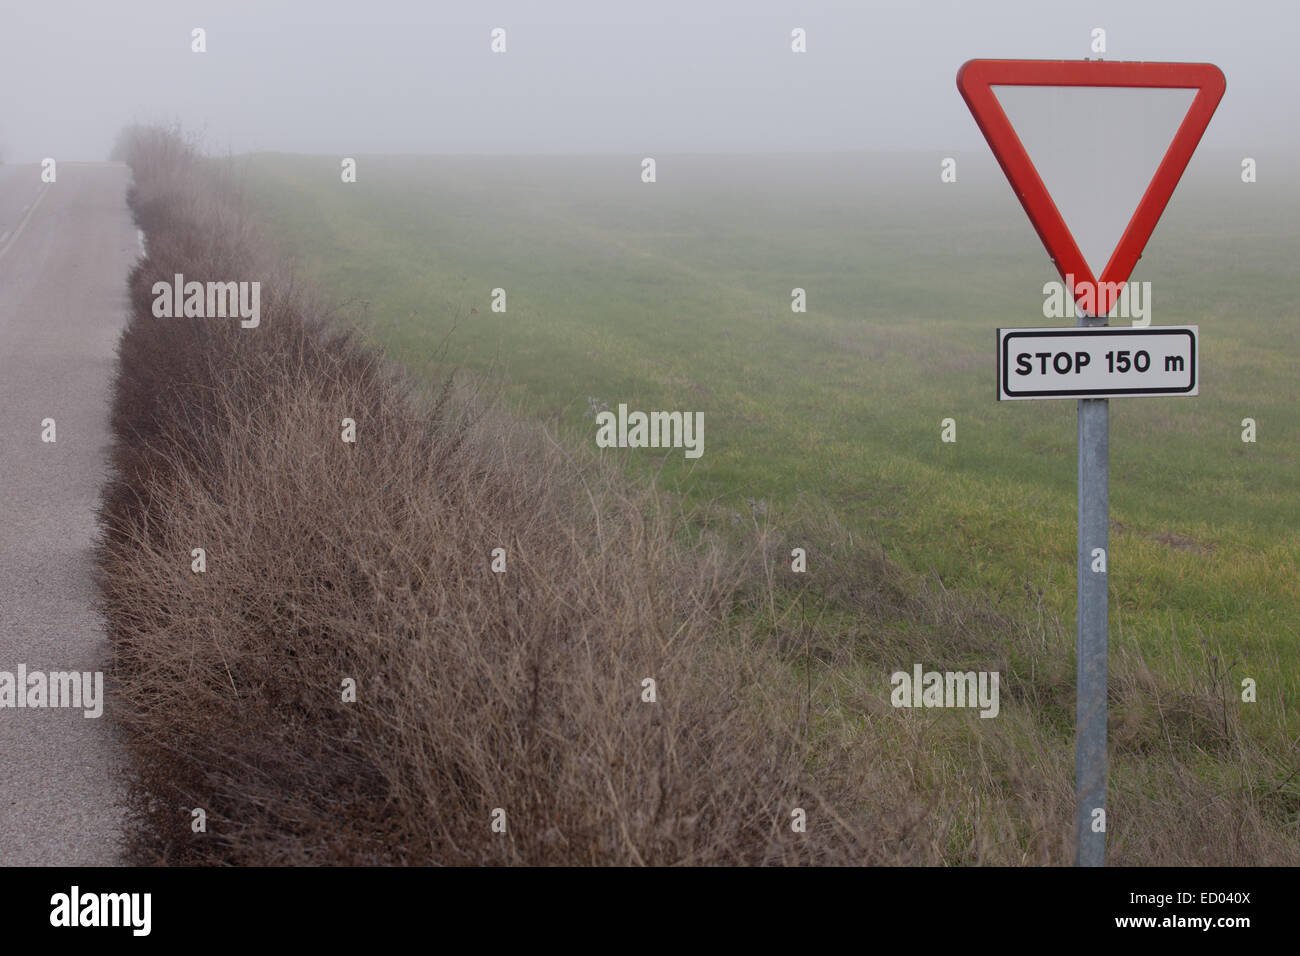 Metal pole with traffic signal yield sign in rural road next to Ahillones, Badajoz, Spain - Stock Image